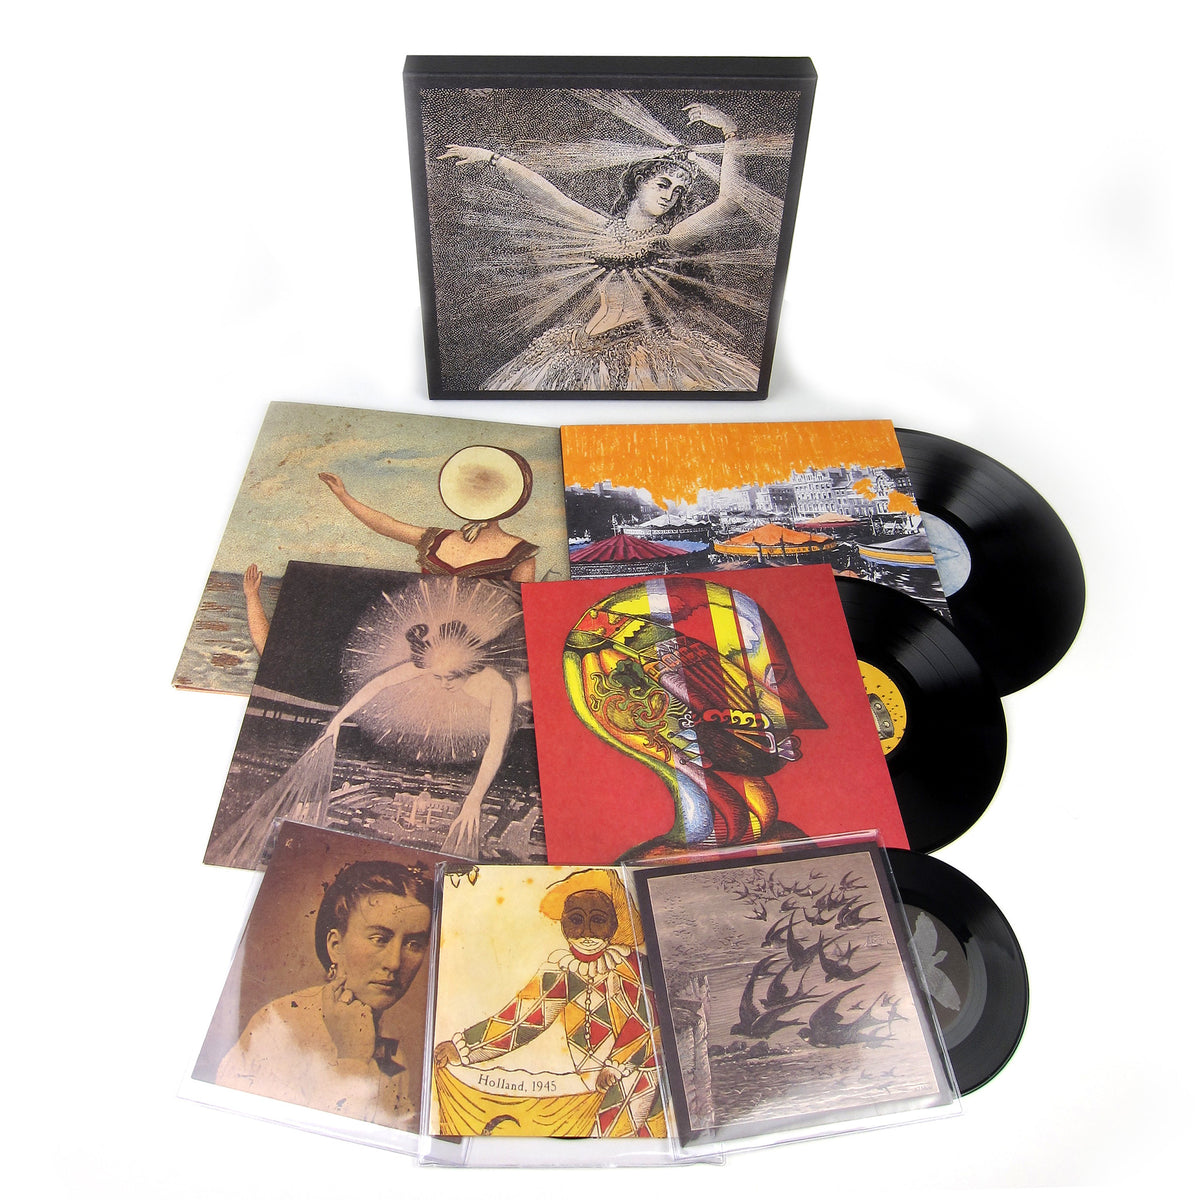 Neutral Milk Hotel: Neutral Milk Hotel Vinyl Boxset